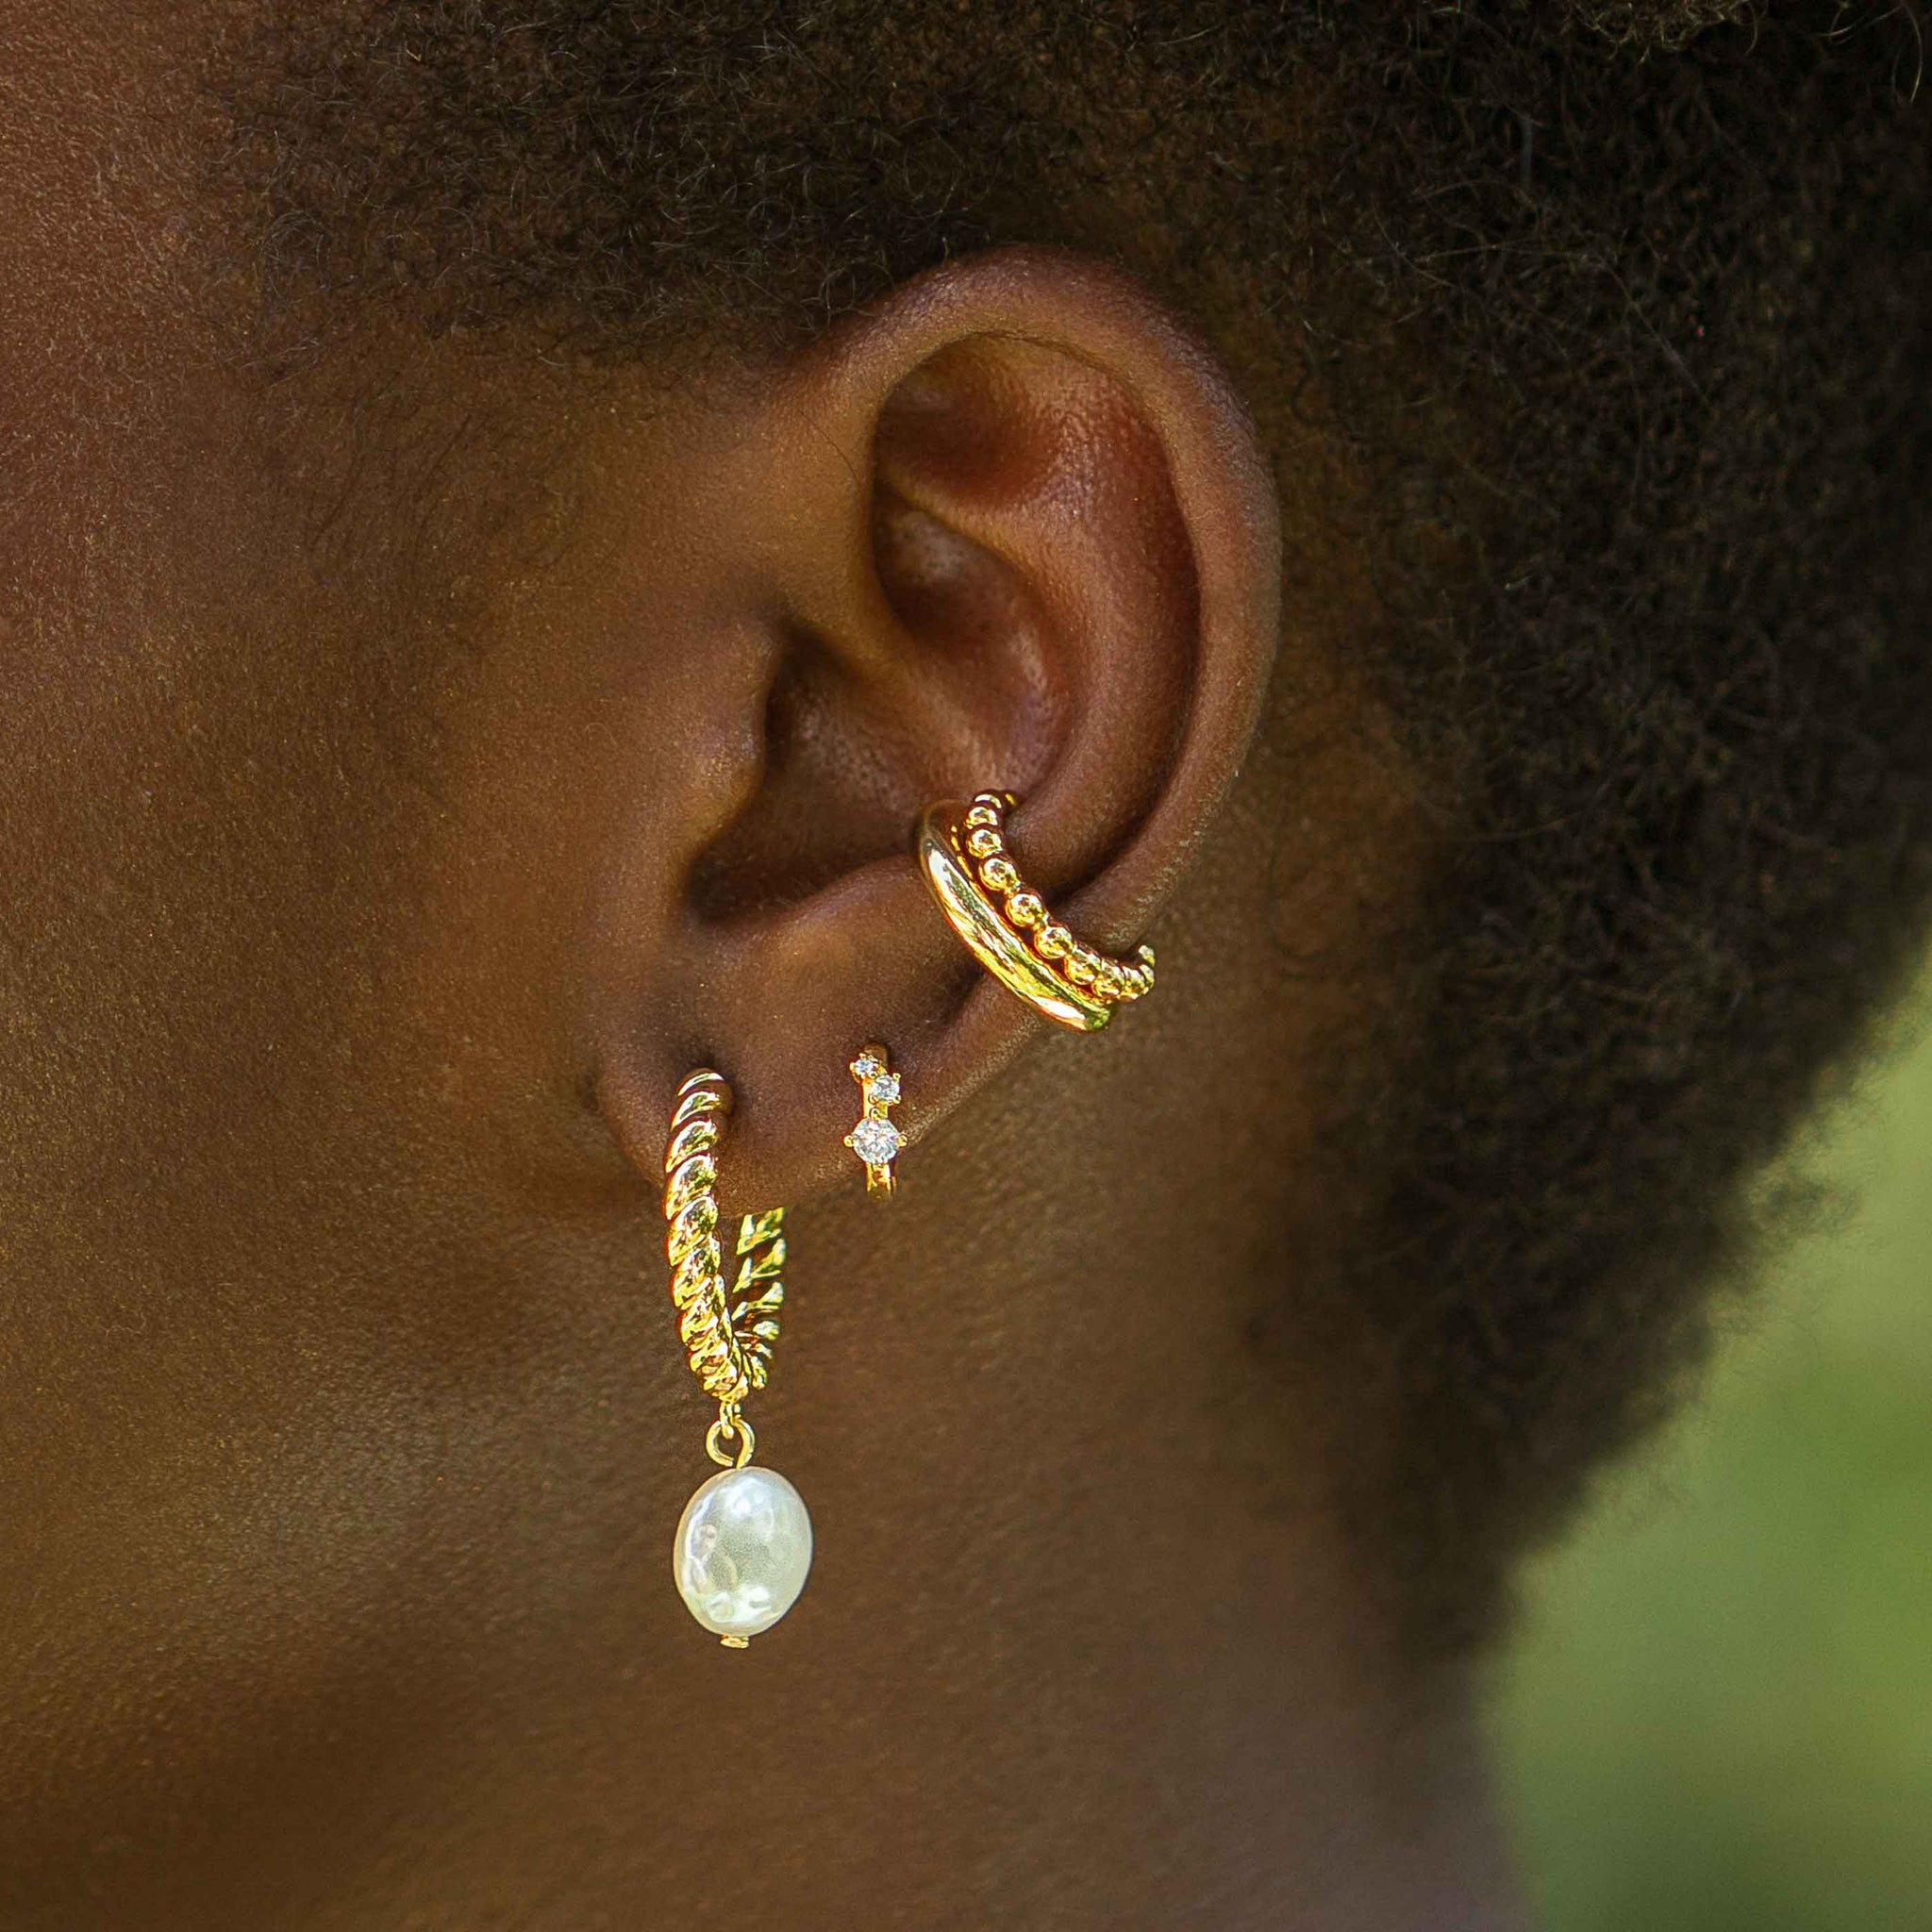 Triple Stone Huggies in Gold worn with pearl hoops and ear cuffs